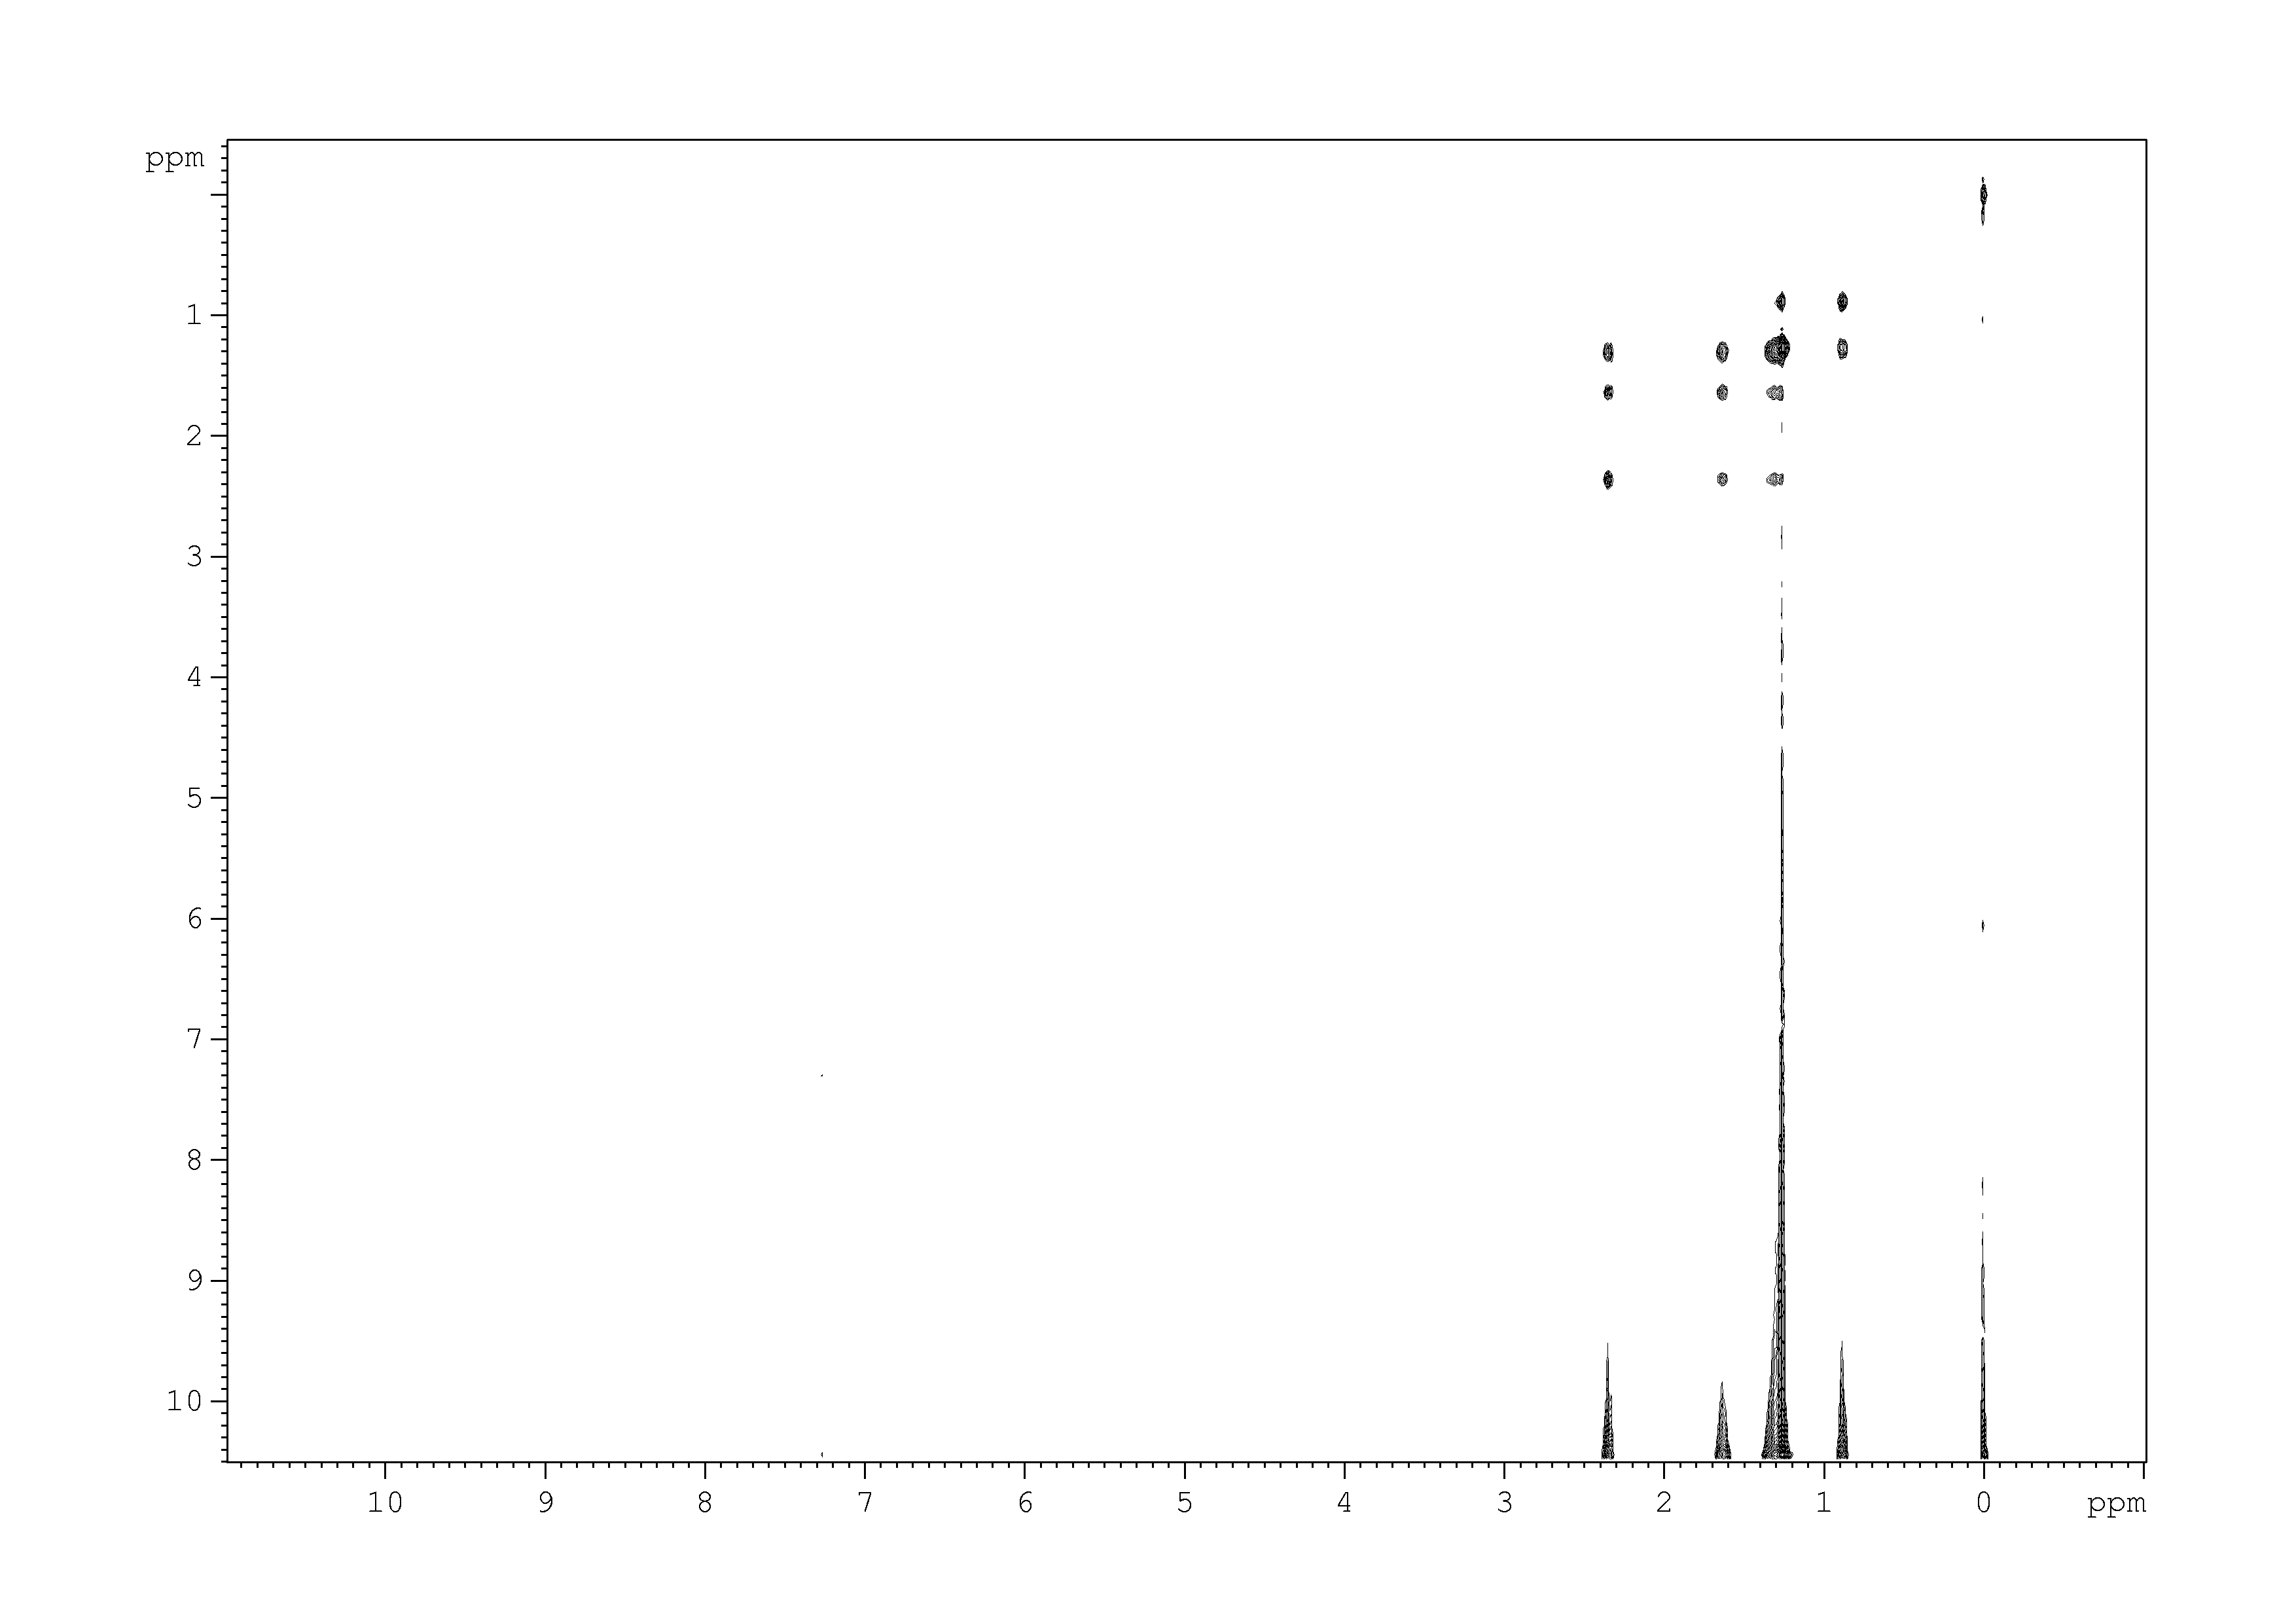 2D [1H,1H]-TOCSY, n/a spectrum for pentadecanoic acid